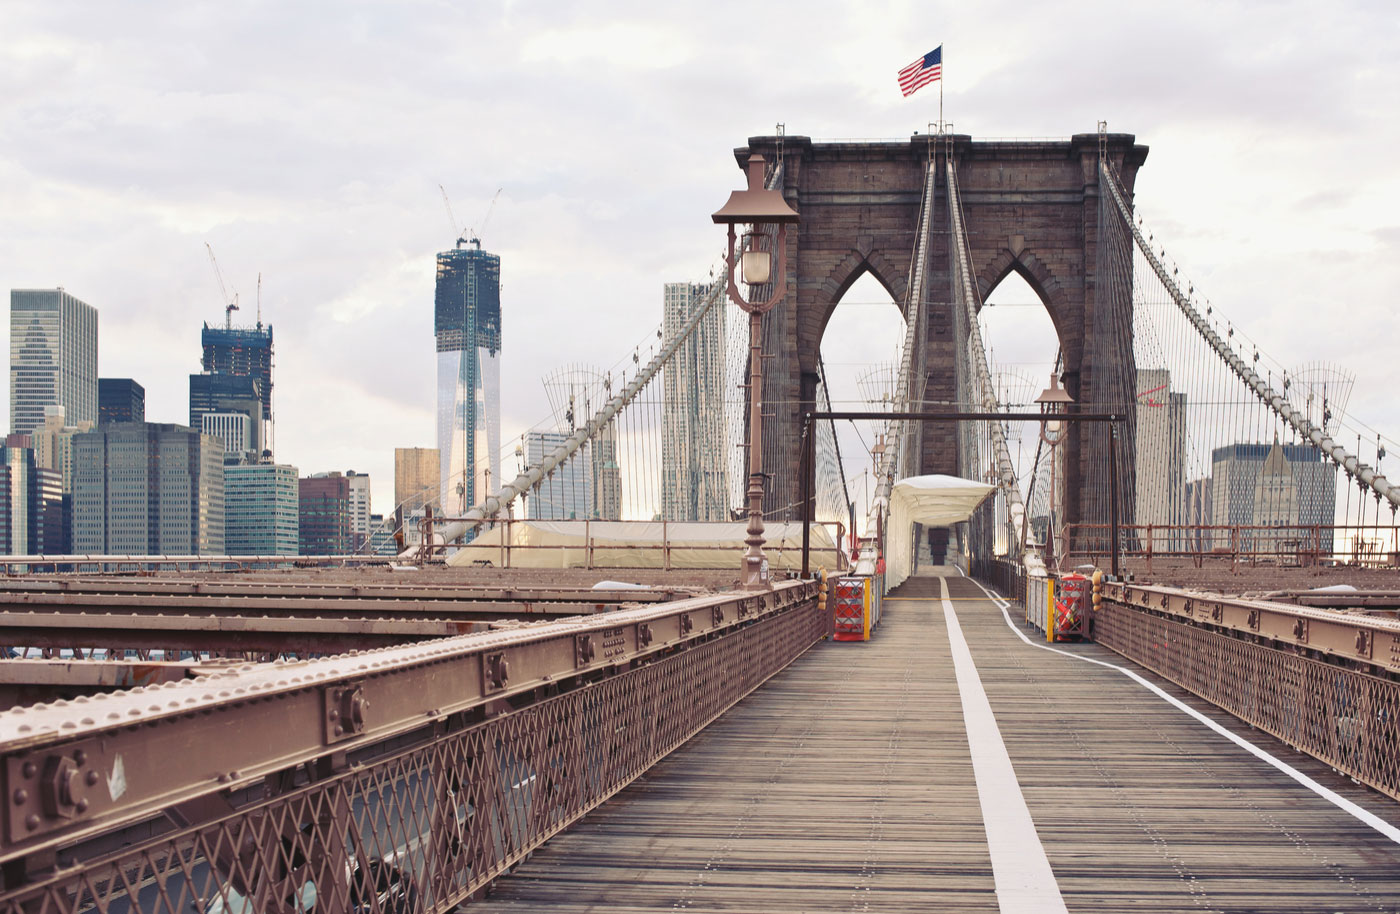 Blick auf die Brooklyn Bridge in New York City